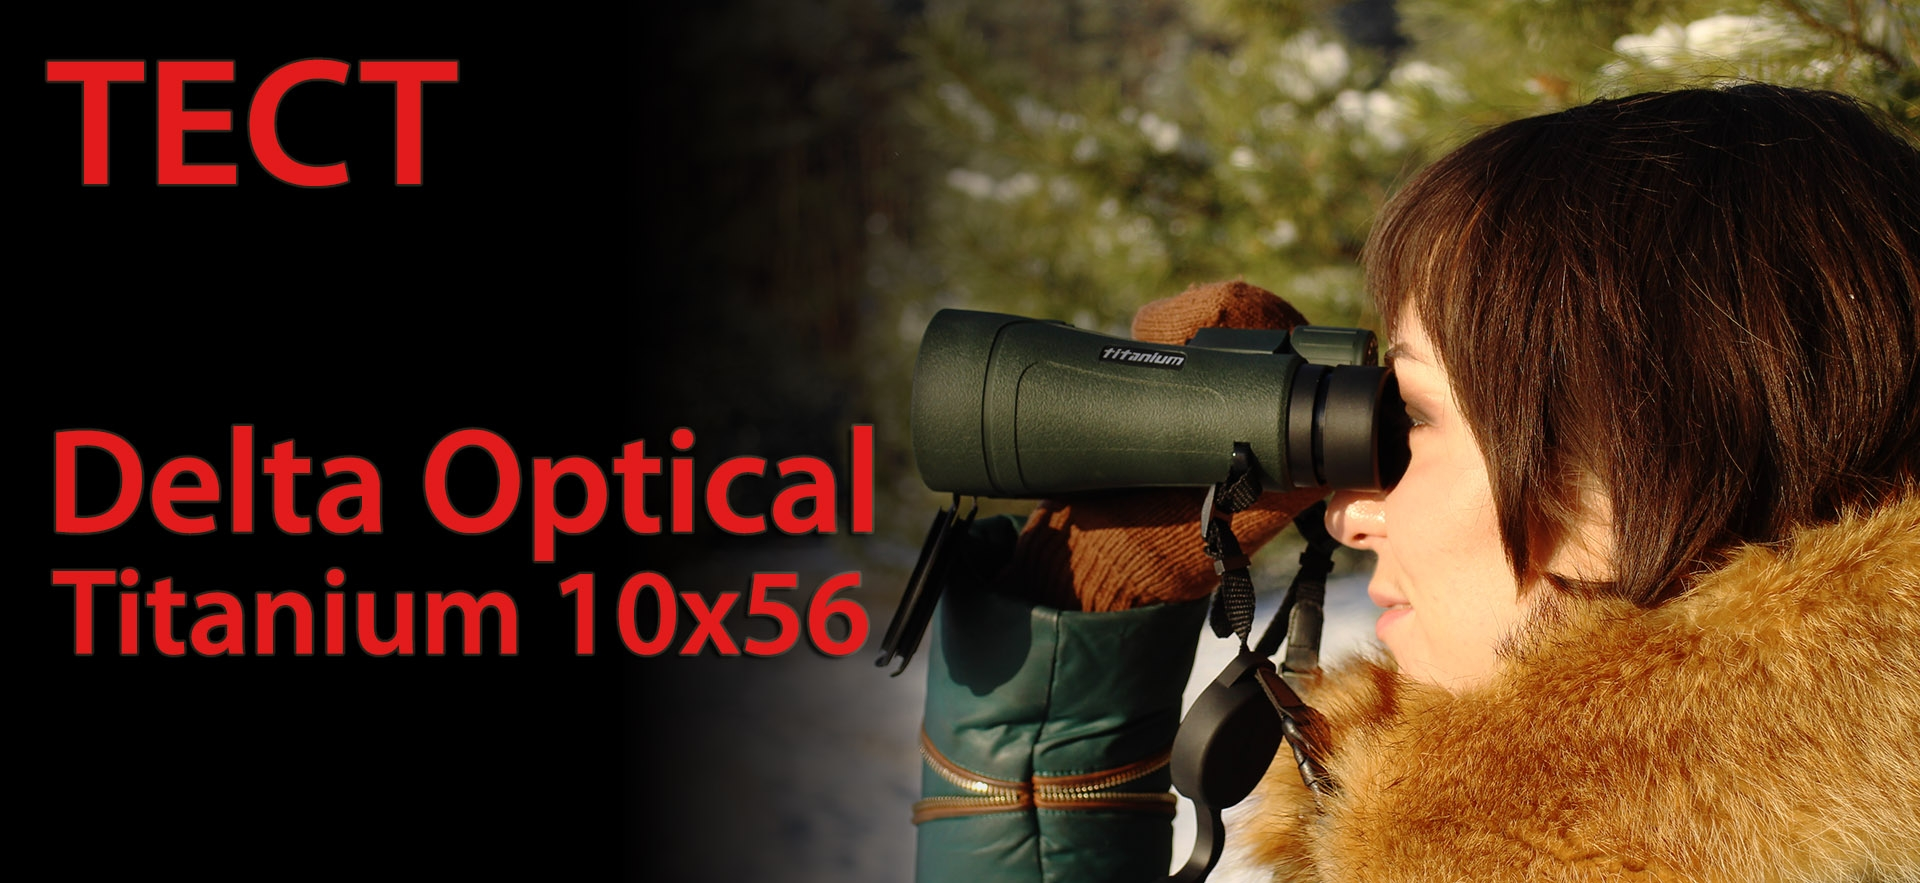 Обзор бинокля Delta Optical Titanium 10x56 ROH